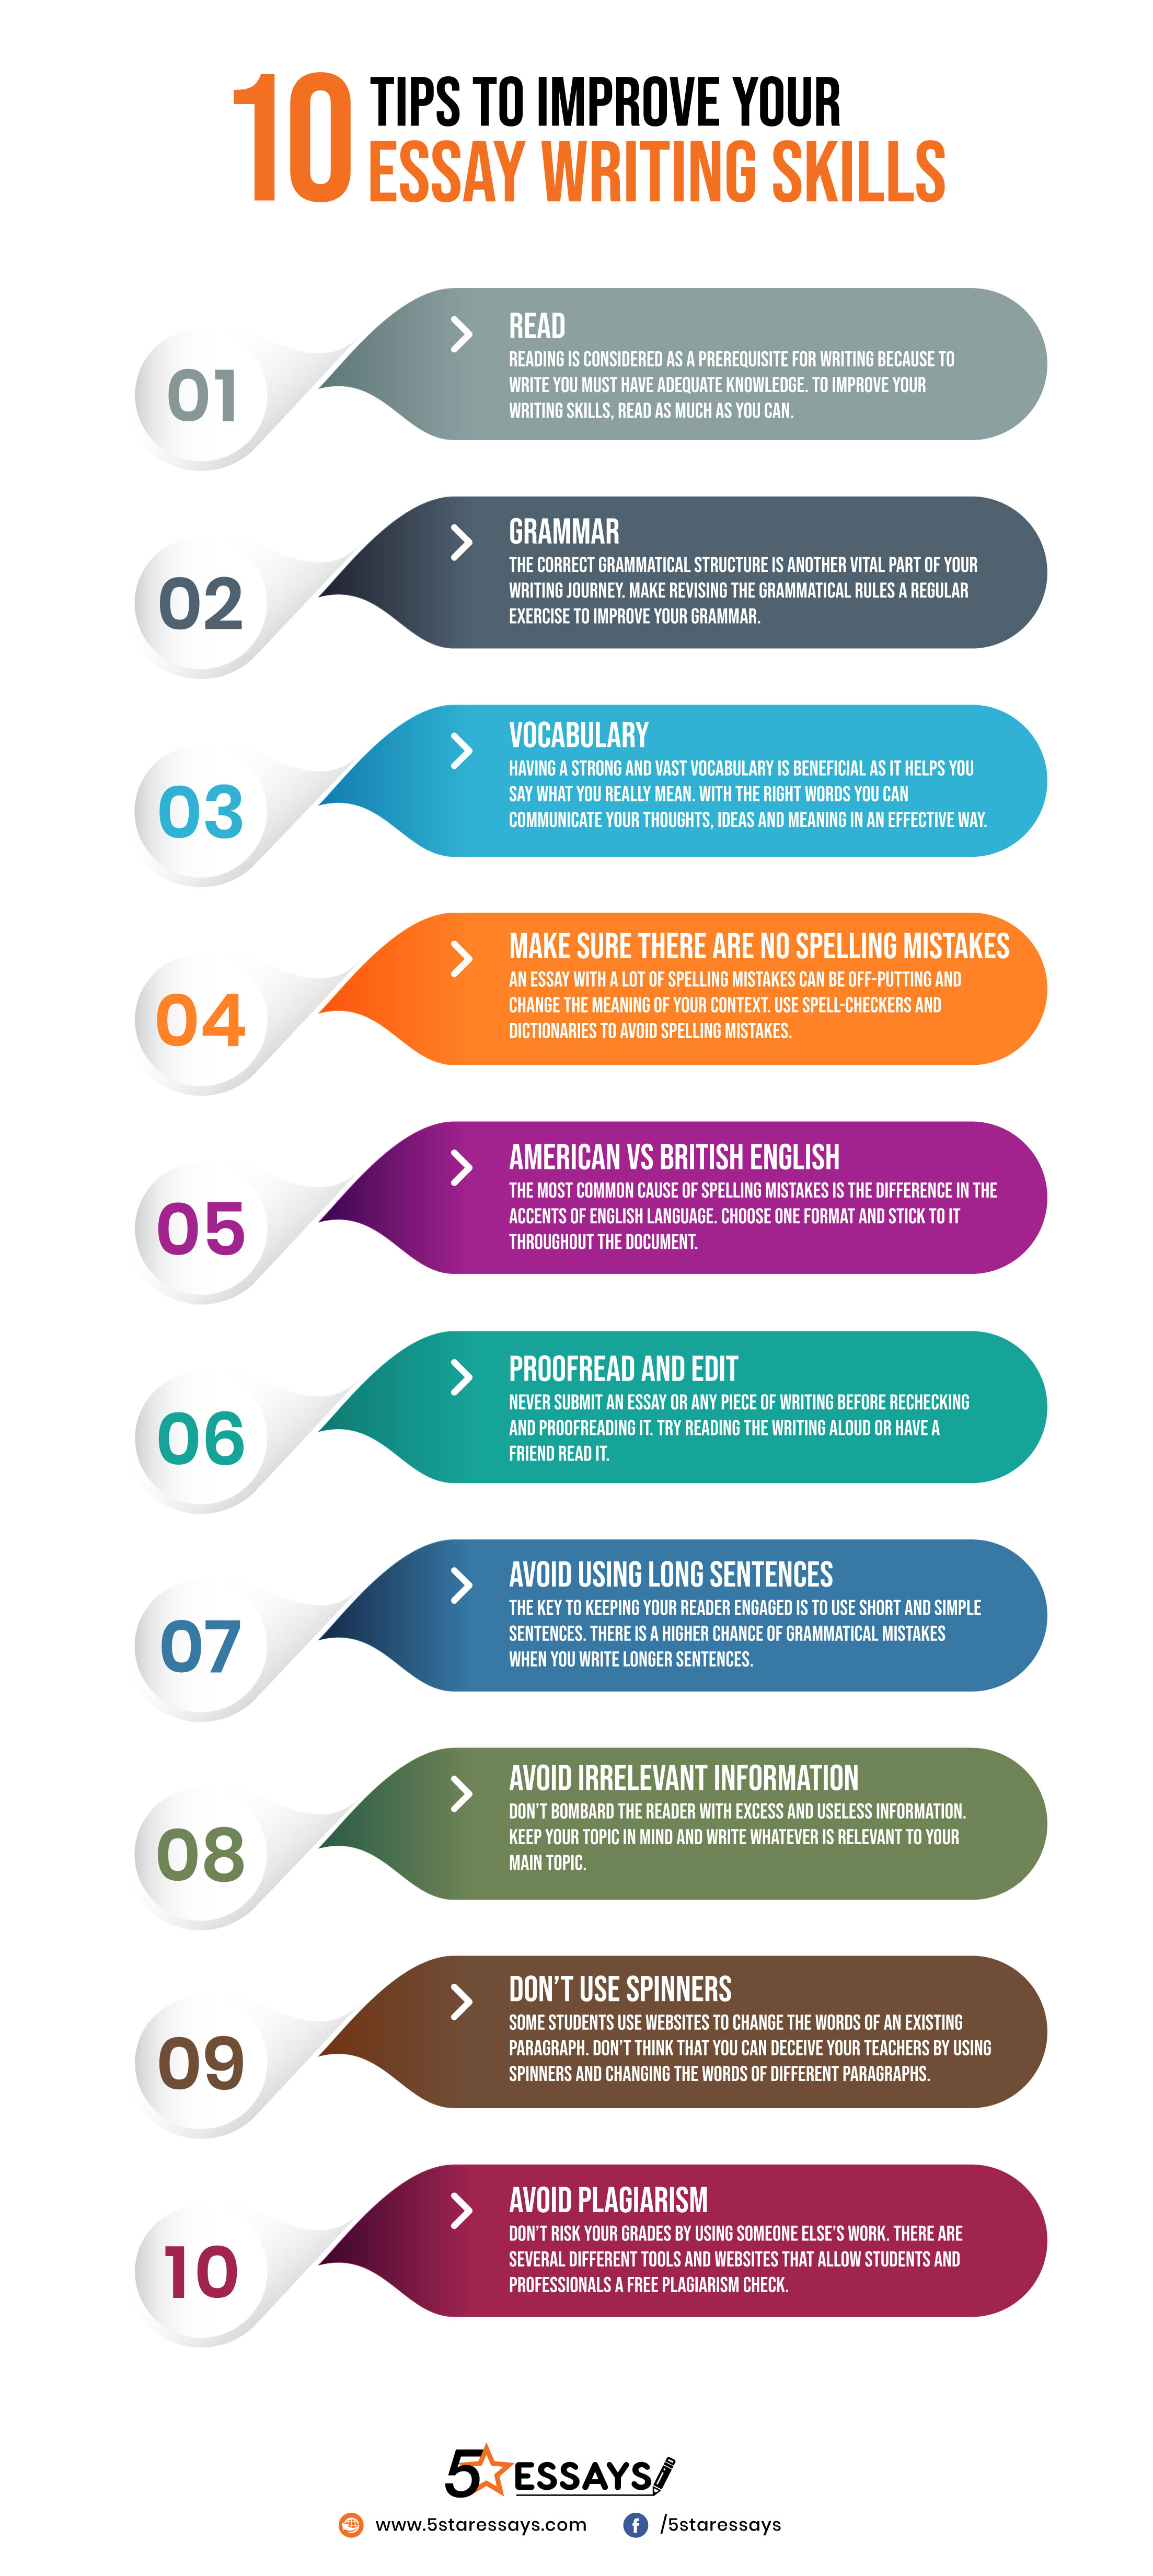 10 Tips To Improve Your Essay Writing Skills 1